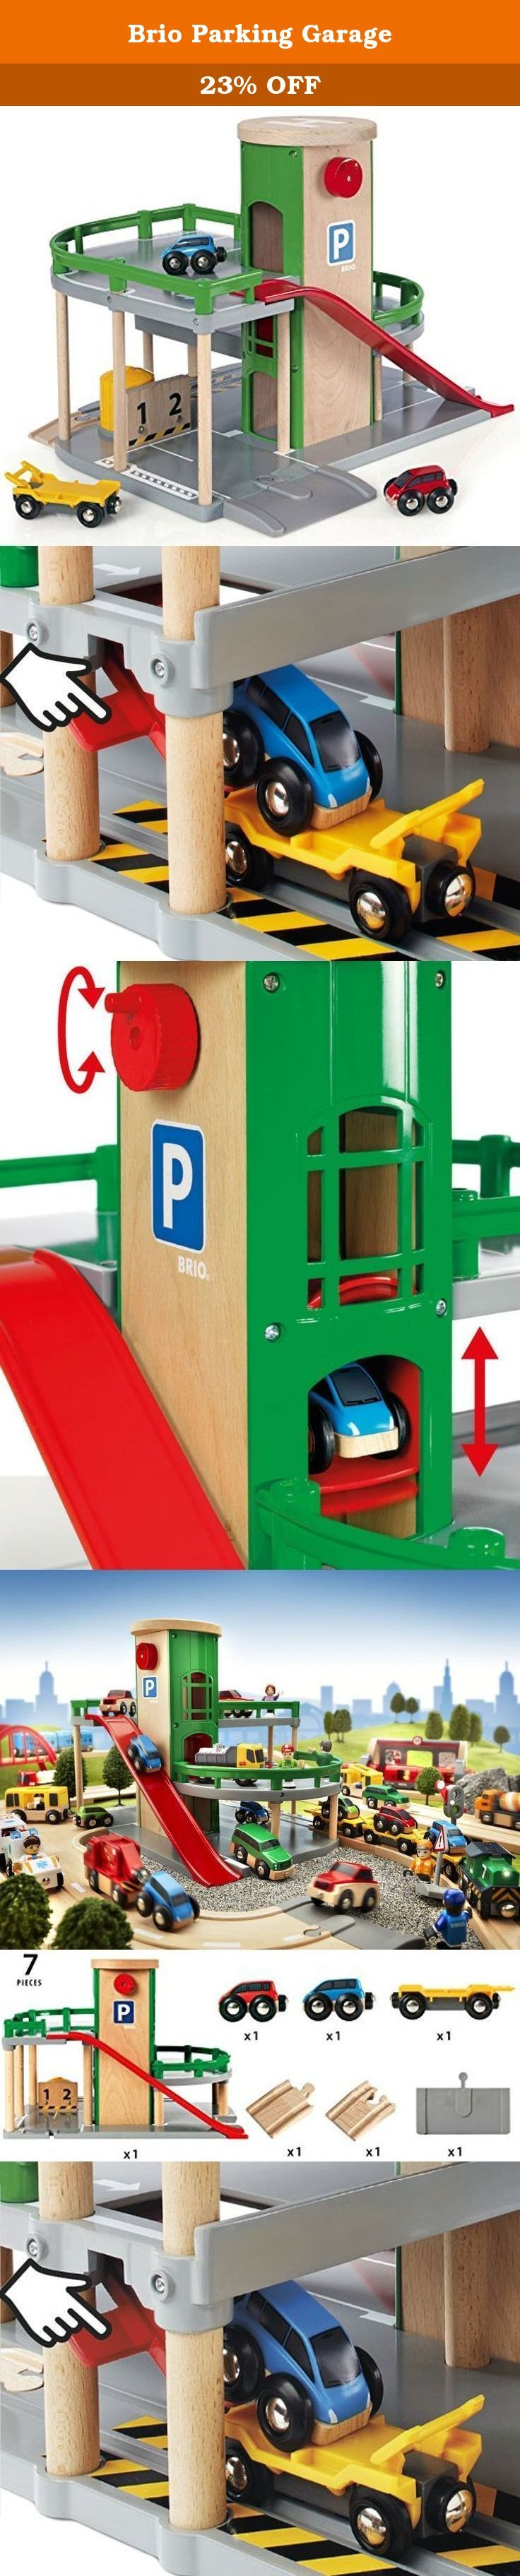 Brio Parking Garage. Founded in Sweden in 1884, BRIO makes the highest quality wooden toys that have delighted children and created happy memories for generations. Both educational and fun, BRIO's uncompromising focus on design, quality and craftsmanship create toys of lasting value that stimulate creativity and imagination. Engaging play and learning are integral themes in all BRIO toys, satisfying a child's educational needs and growing with them through their various phases of...